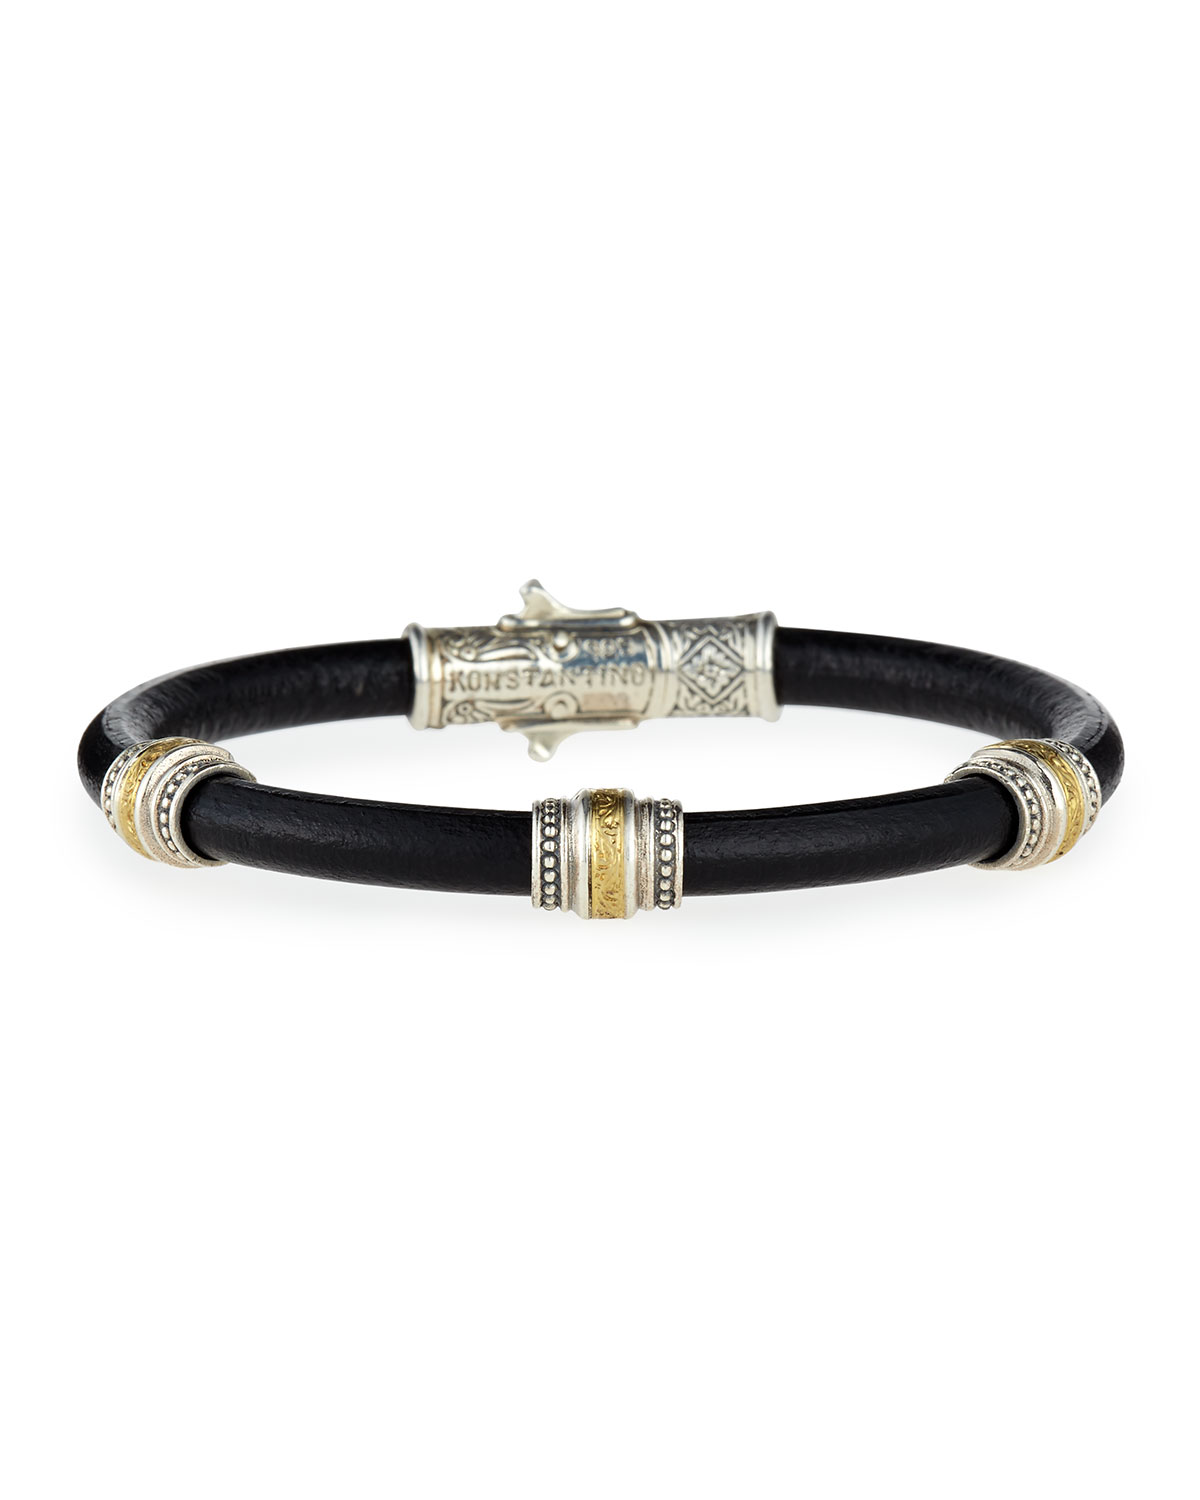 Konstantino Phidias Men's Leather Cord Bracelet